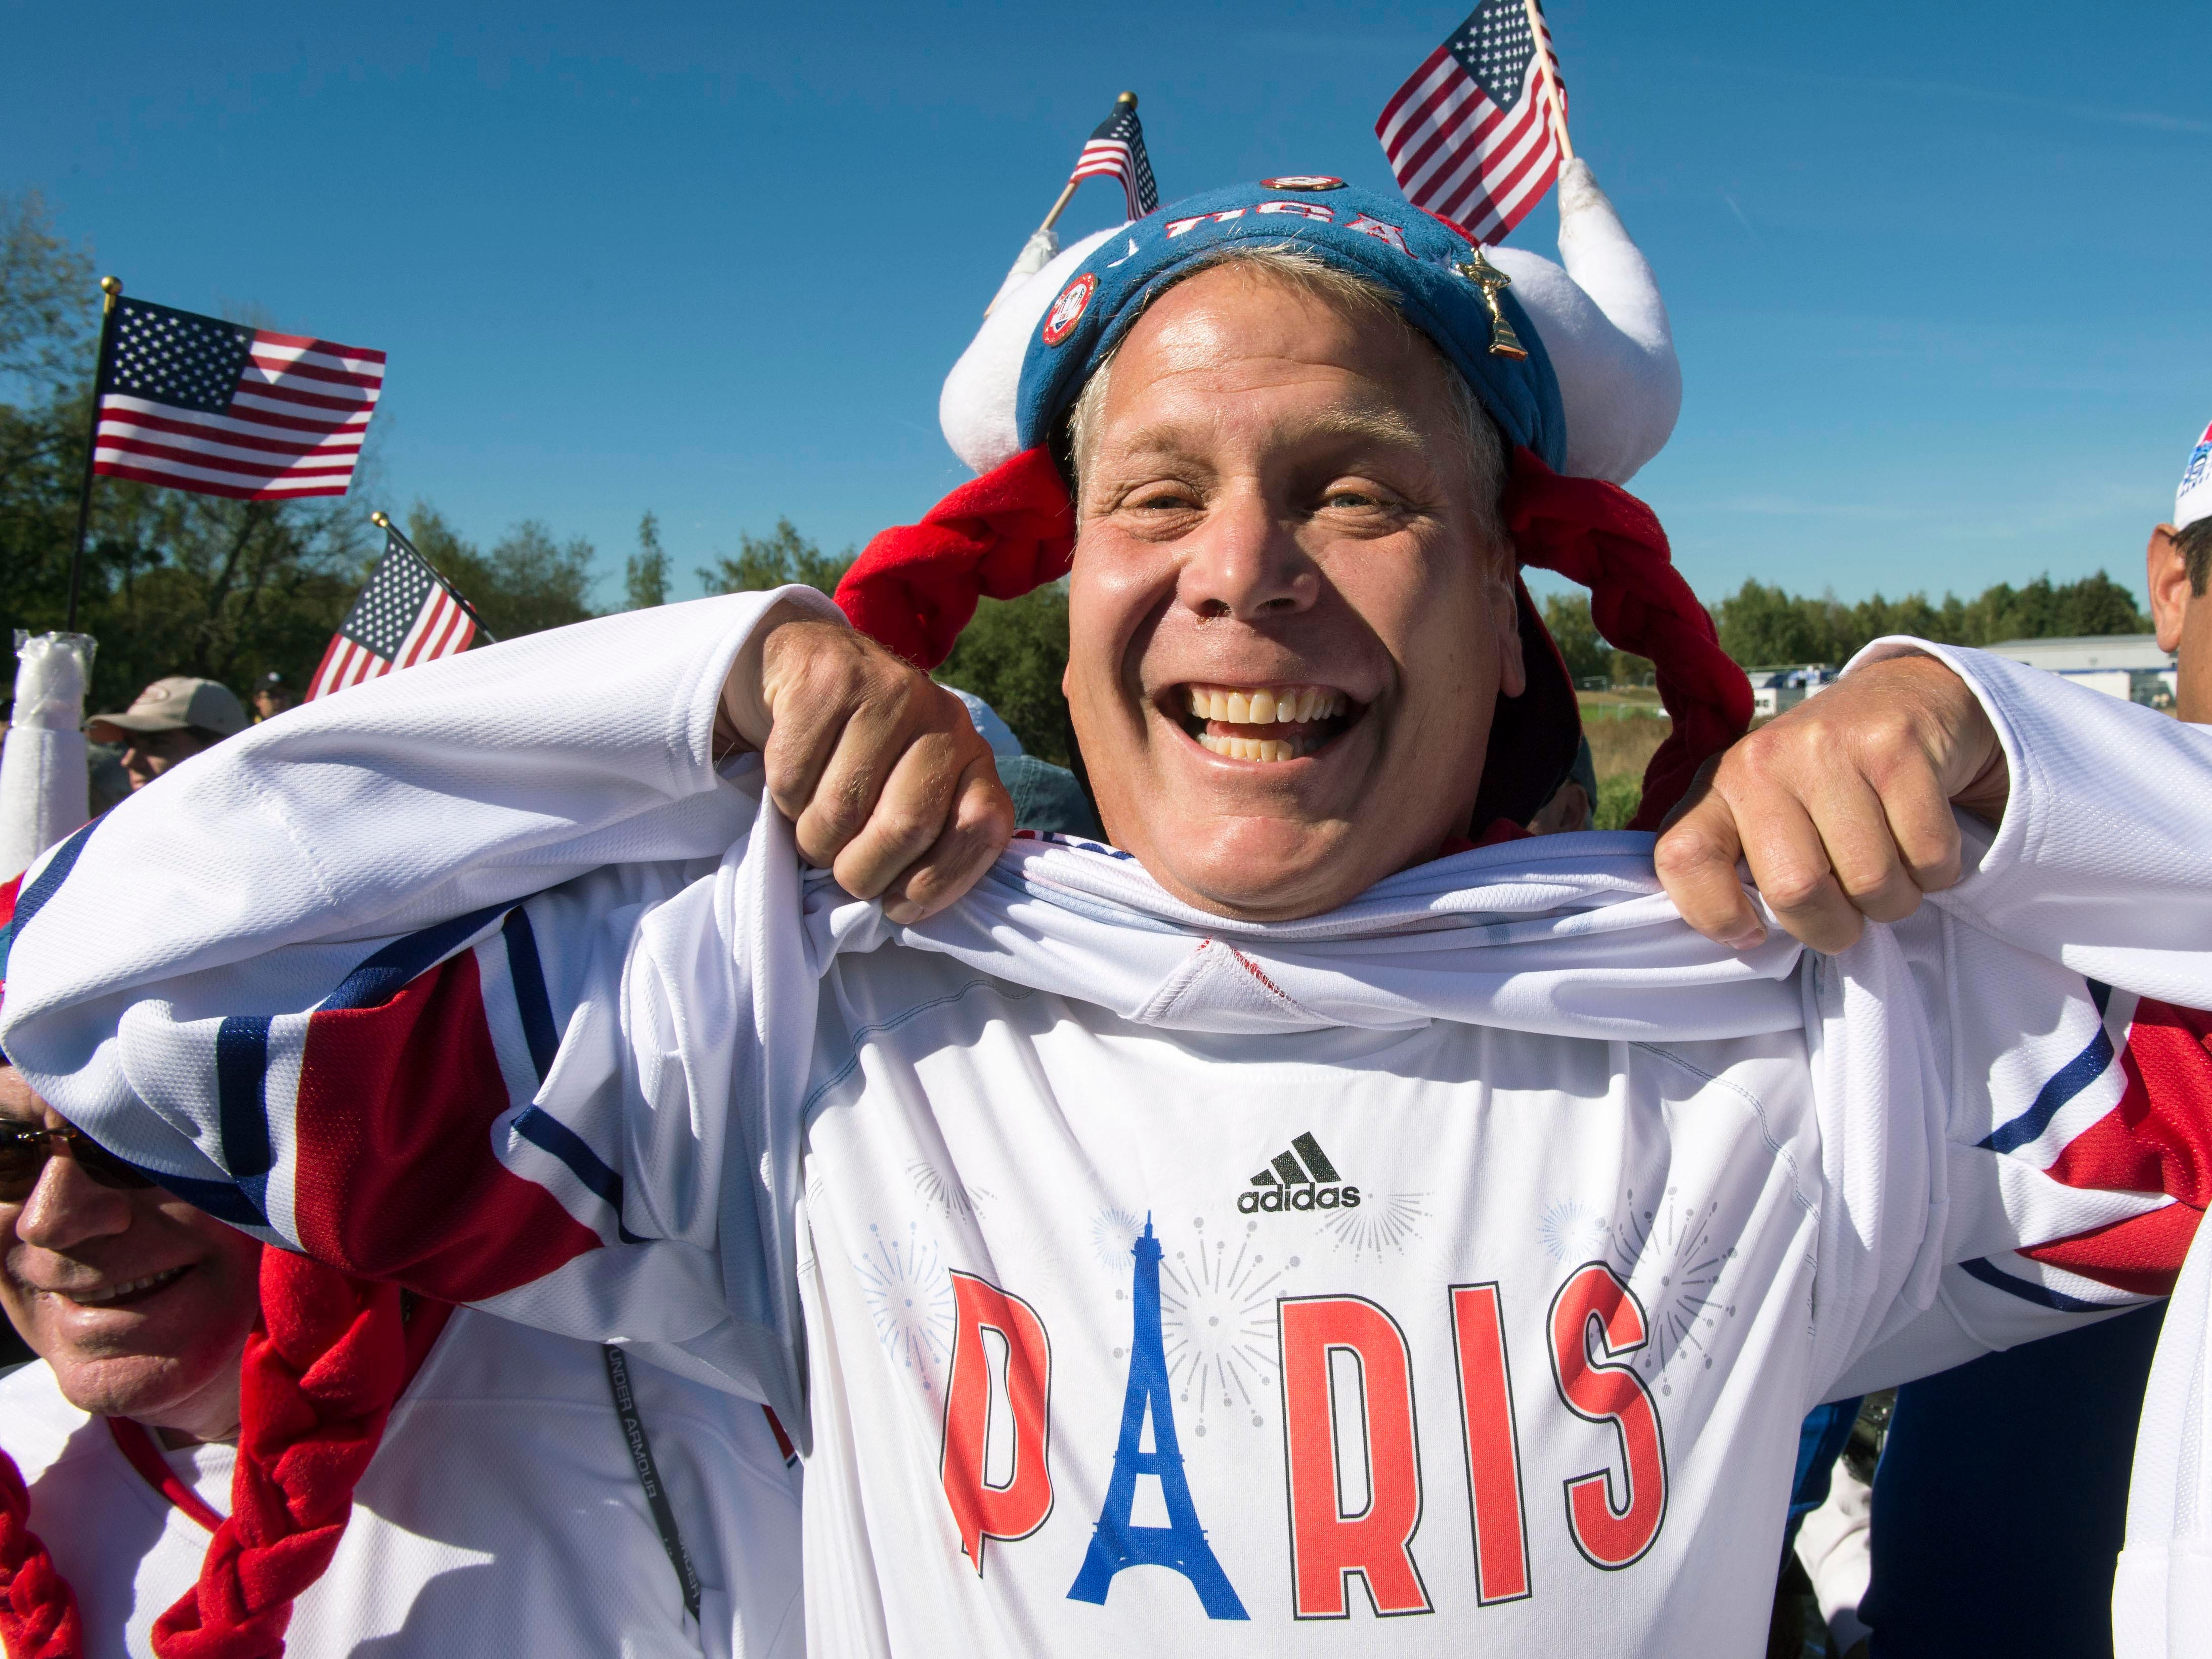 A Team USA fans shows his shirt during a Ryder Cup practice round.